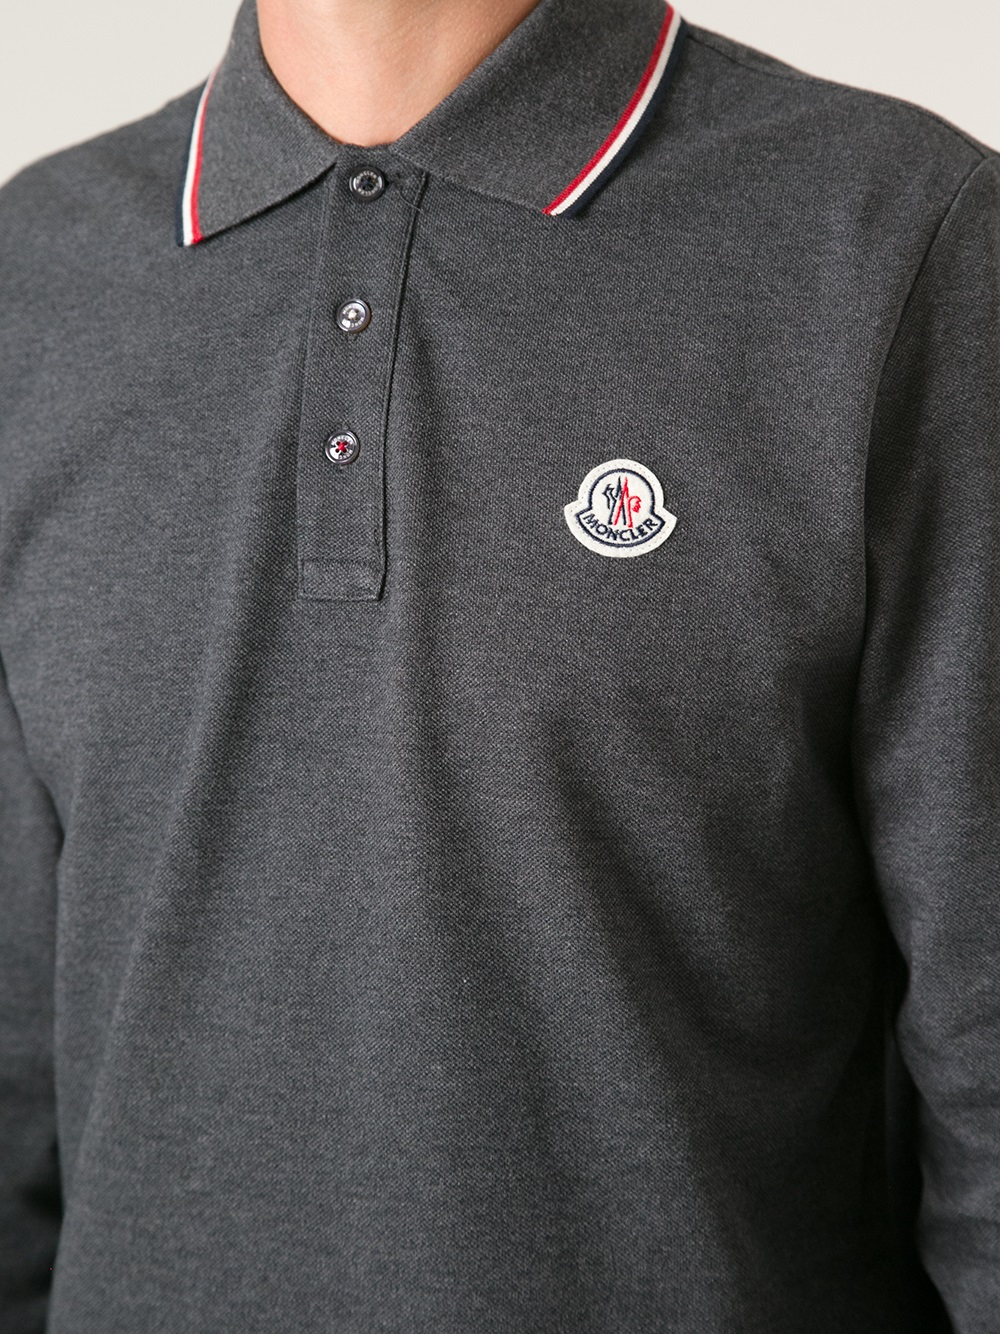 Moncler Long In Shirt For Polo Sleeved Men Lyst Gray rrfRqdw